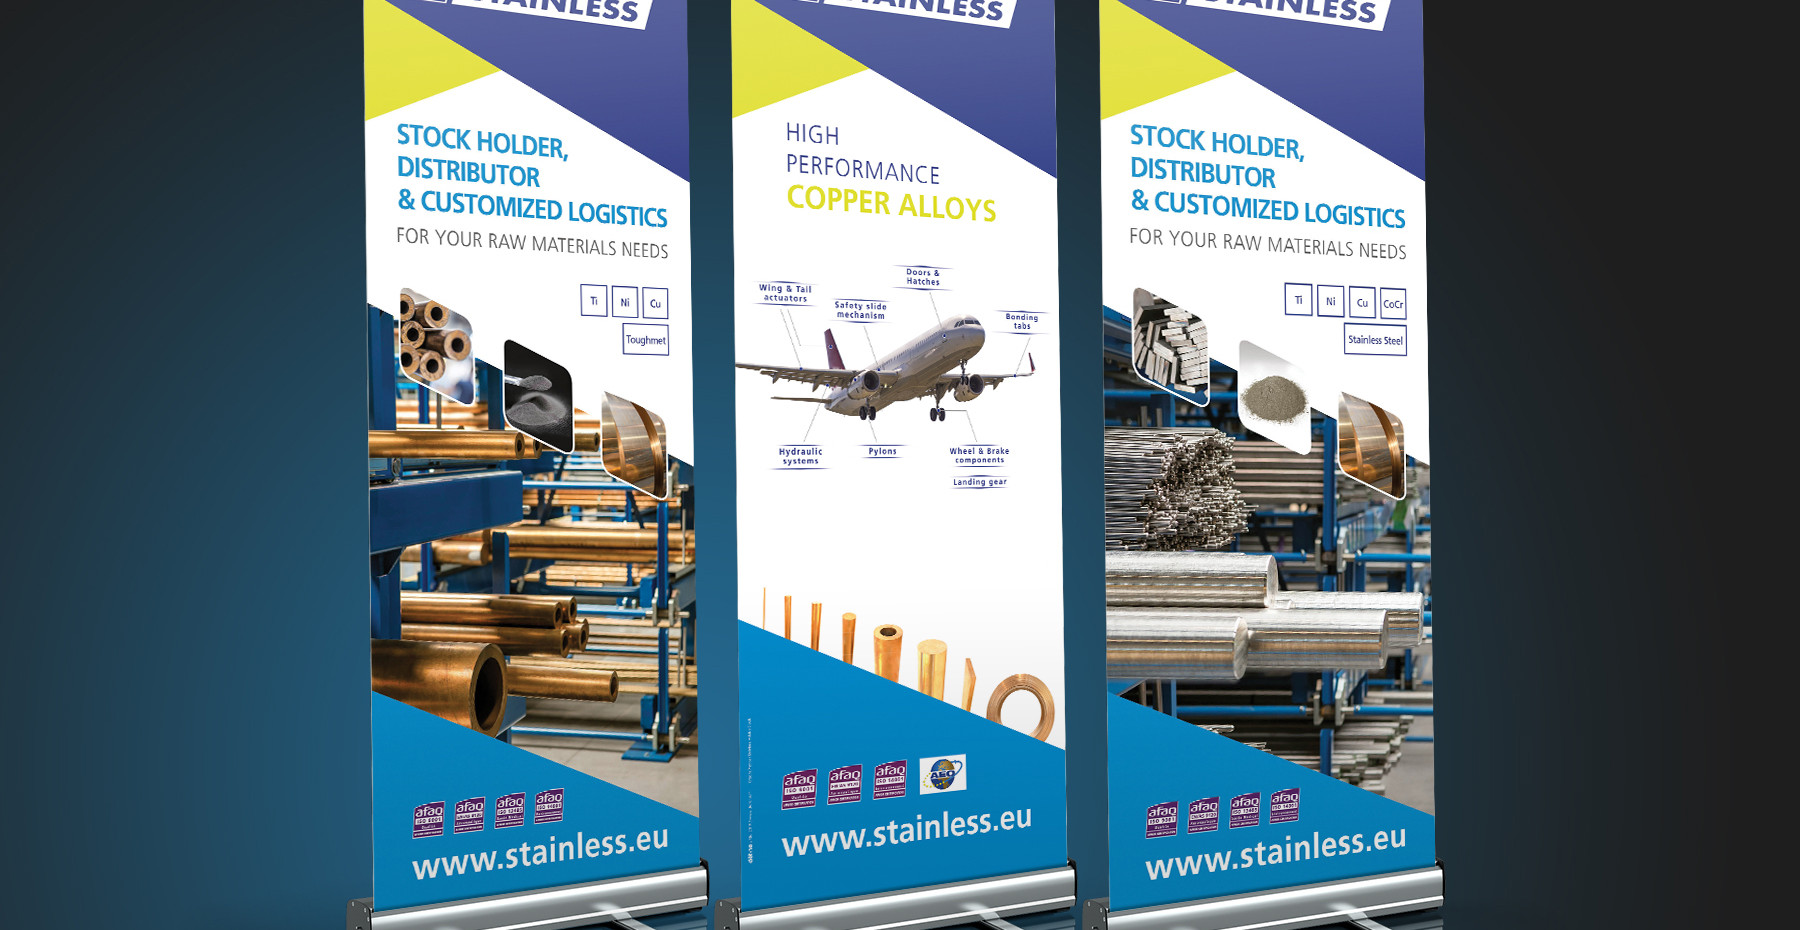 STAINLESS-Roll-Up.jpg